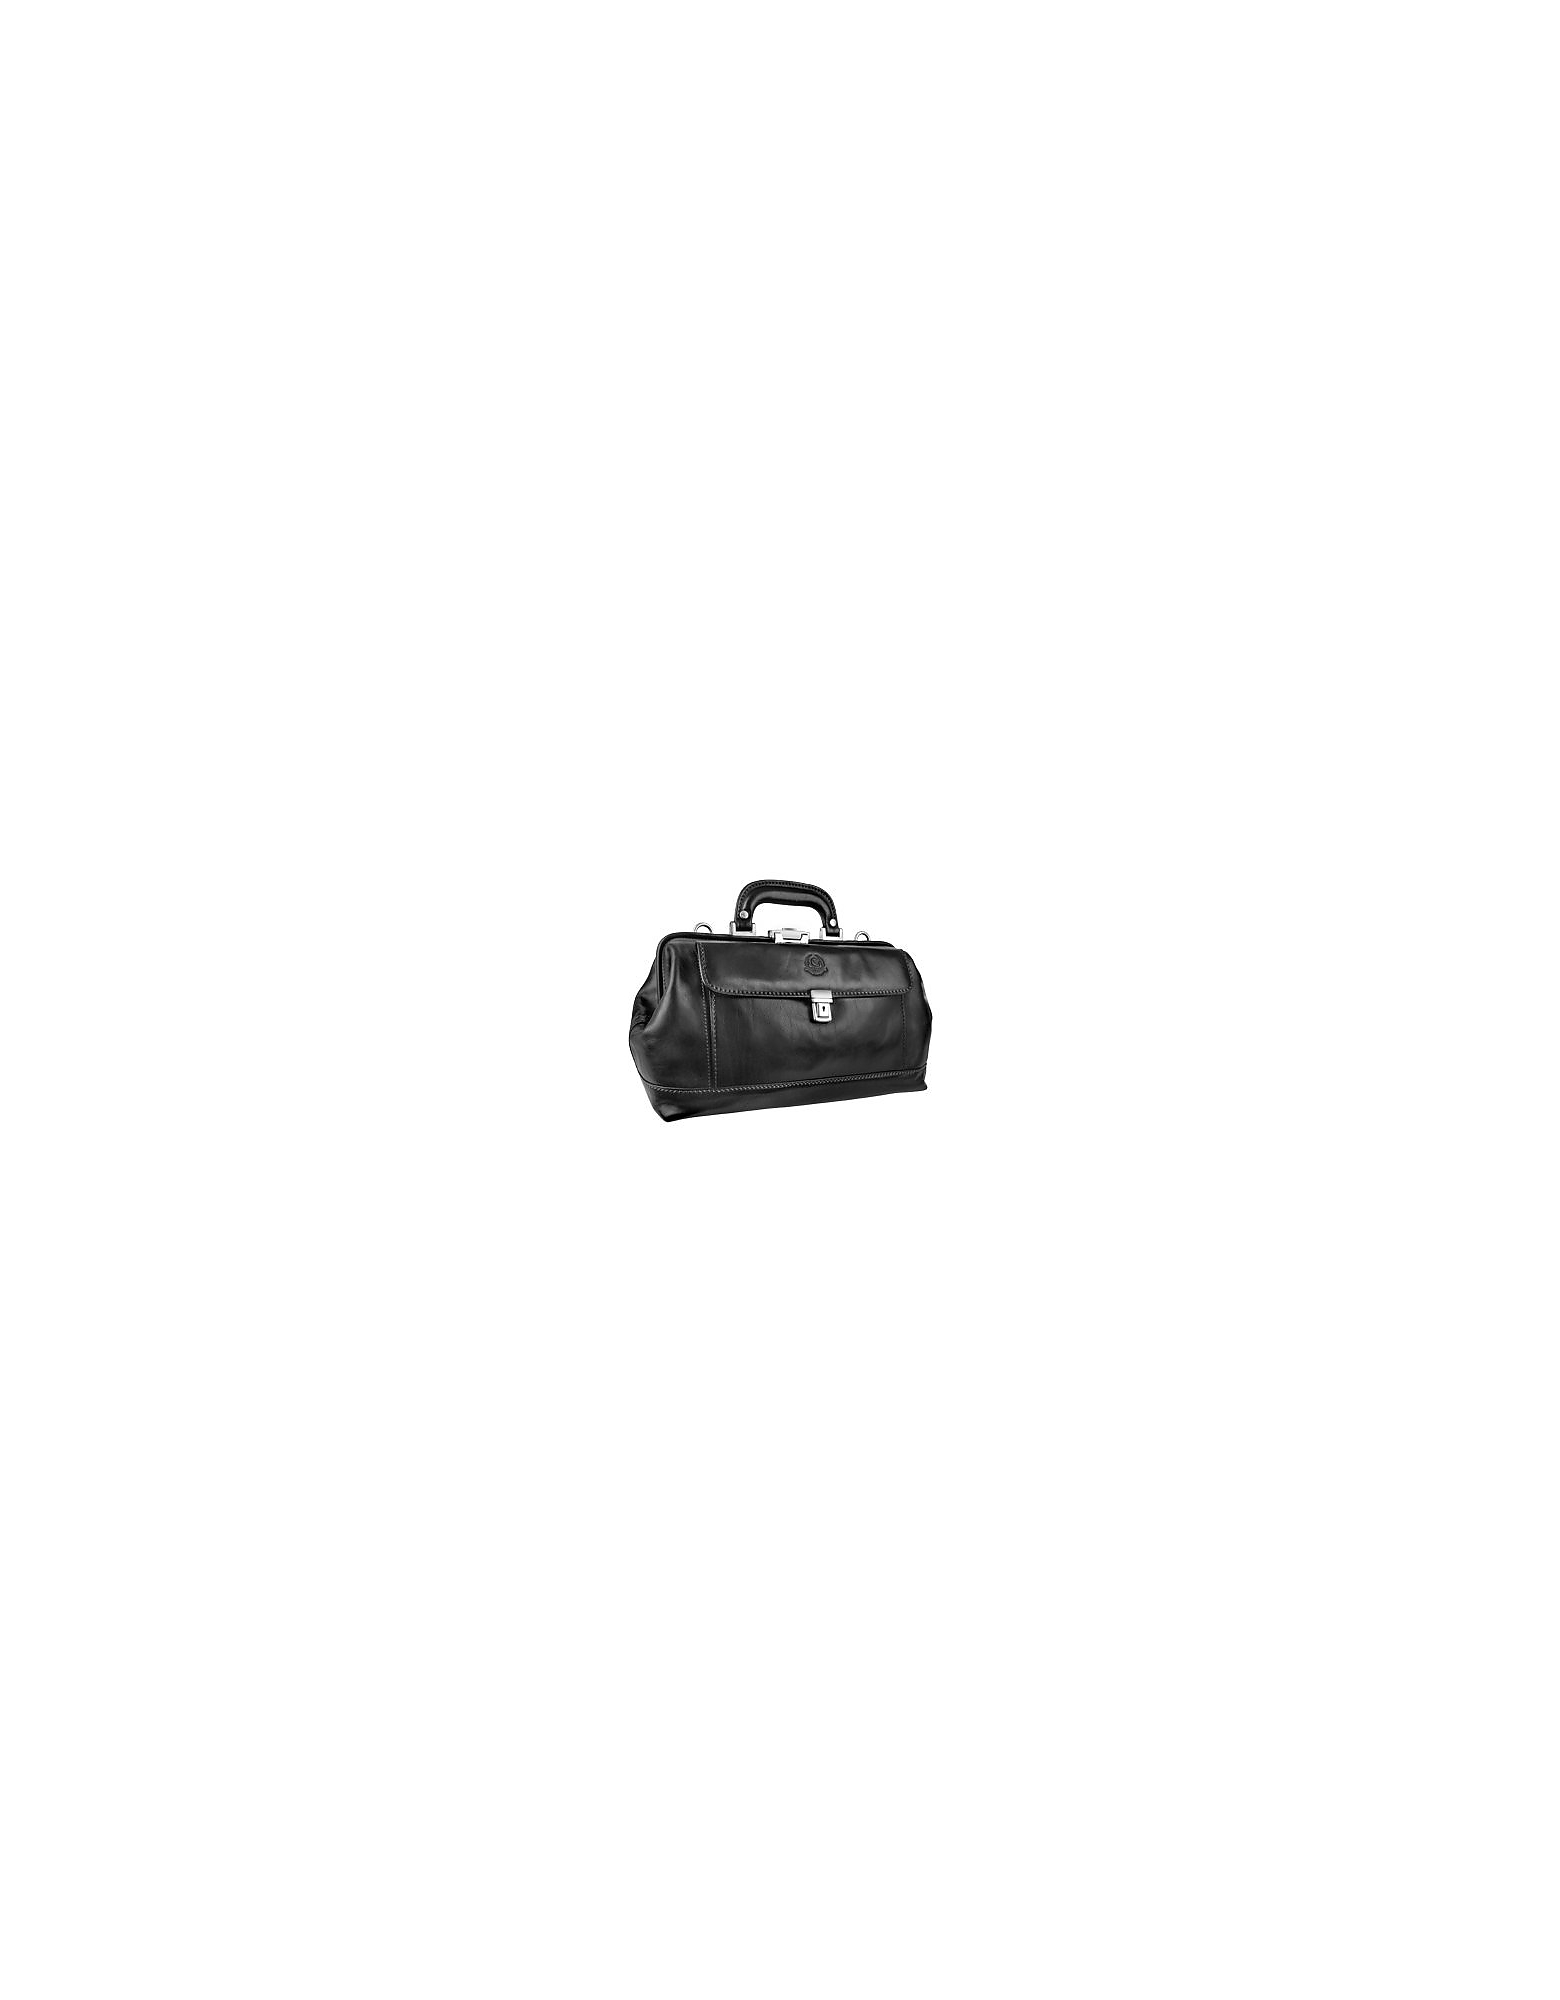 Chiarugi Briefcases, Genuine Italian Leather Doctor Bag